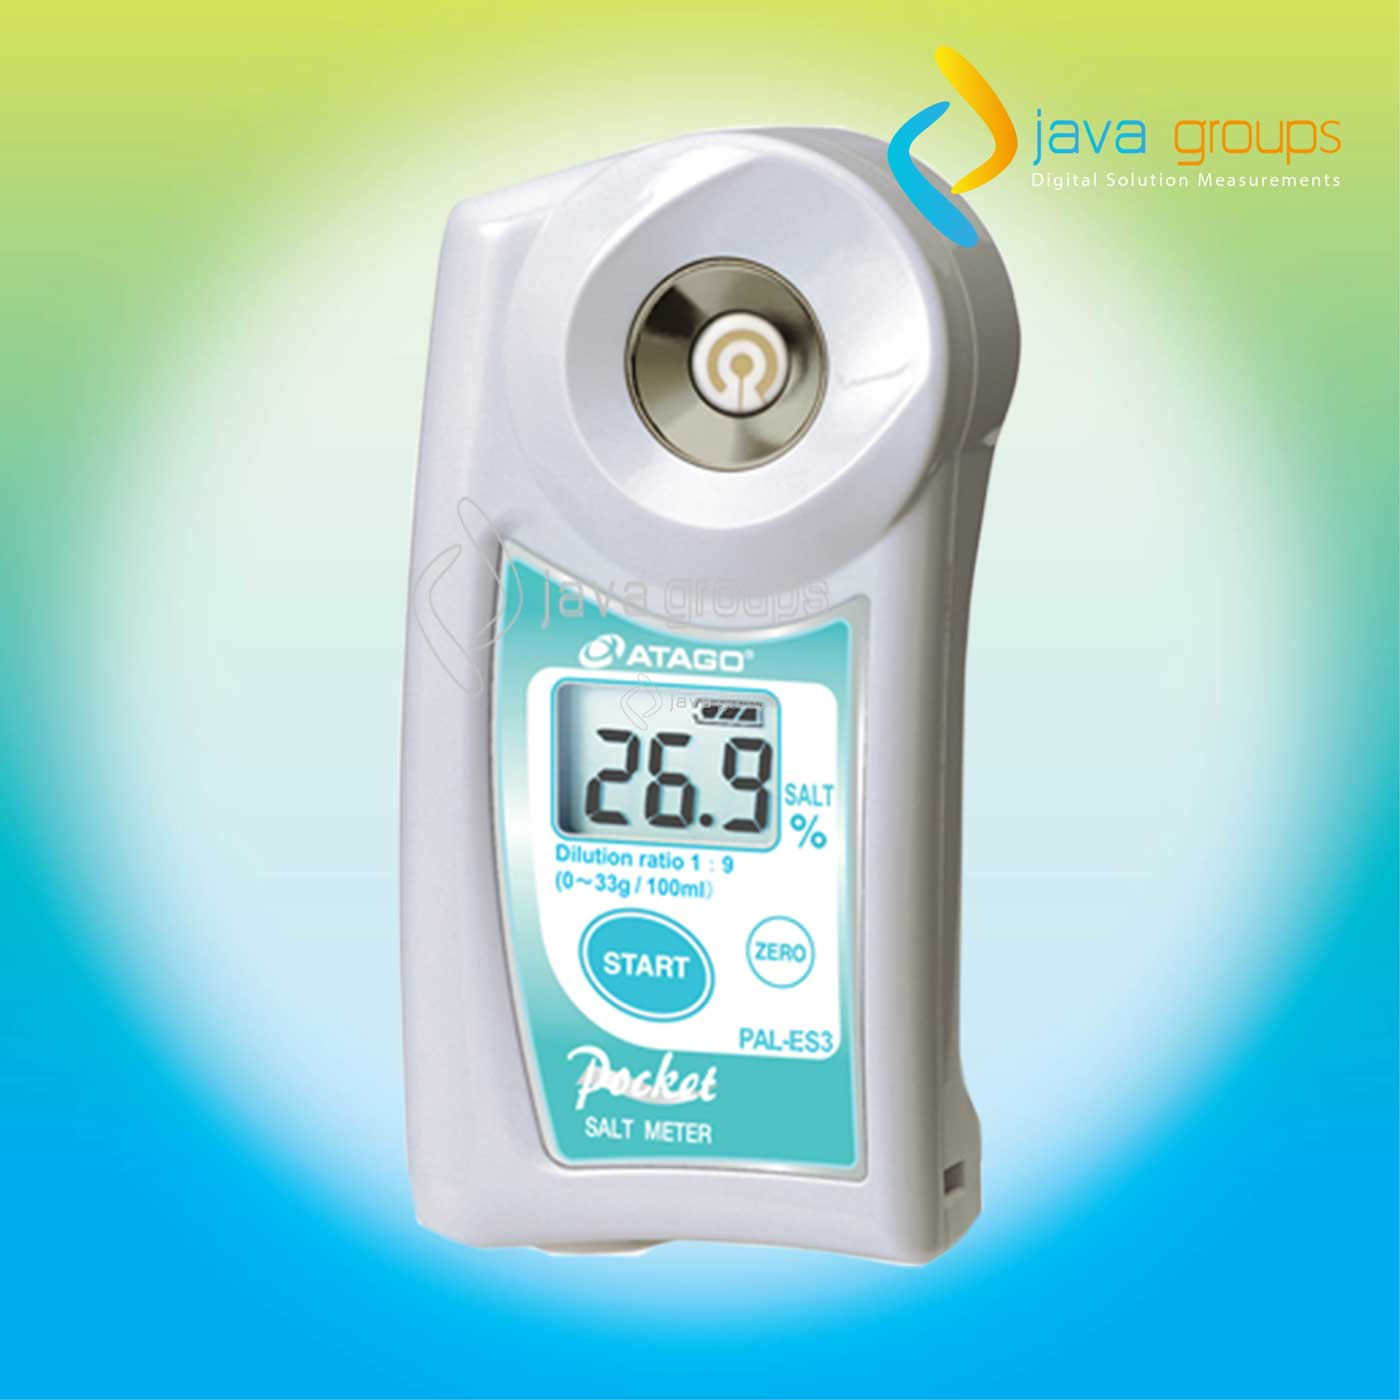 Alat Digital Handheld Salt Meter ATAGO PAL-ES3